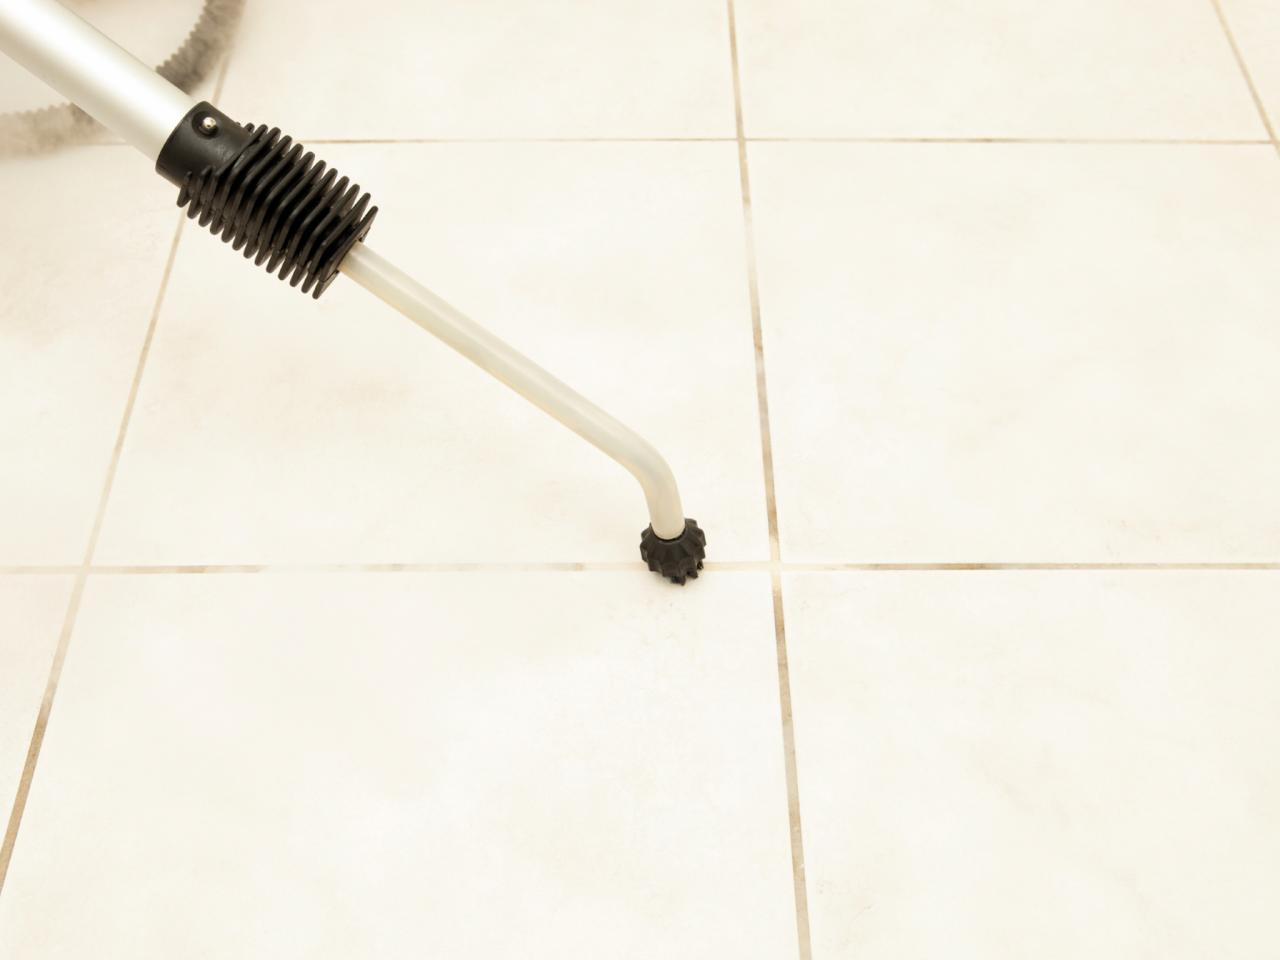 How to clean grout diy how to clean grout dailygadgetfo Images